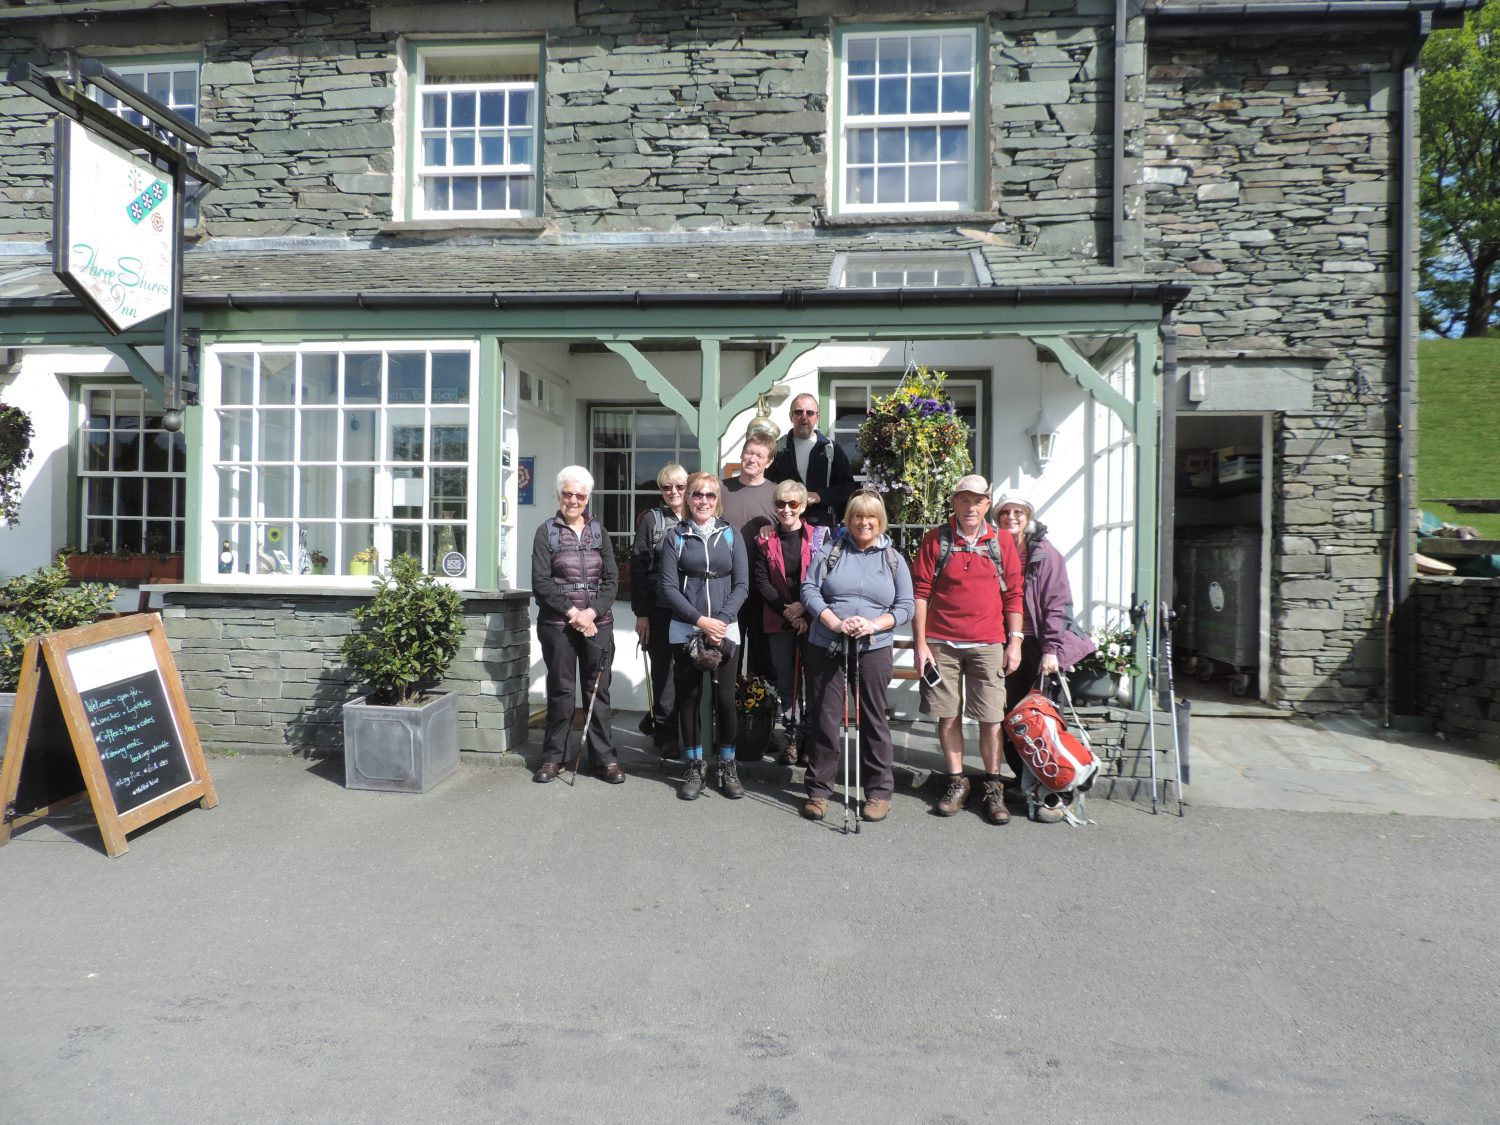 image: Three Shires Inn Little Langdale